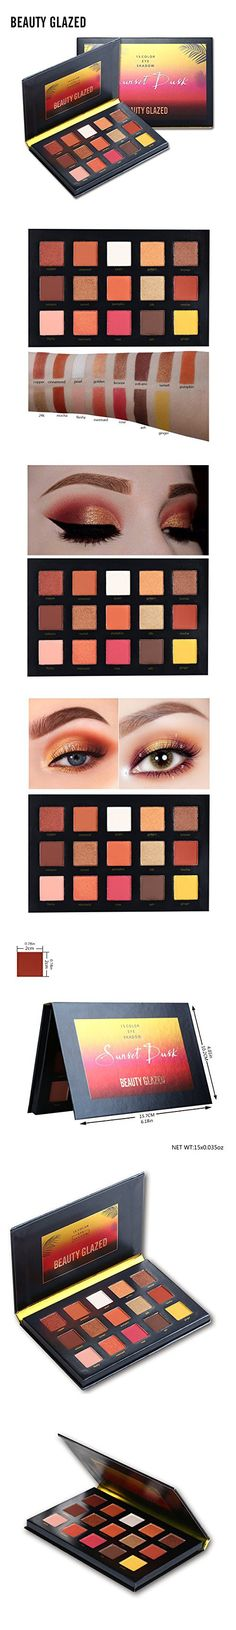 Beauty Glazed Sunset Dusk Eyeshadow Palette 15 Colors Long Lasting Eye Shadow Powder Make Up Waterproof Eye Shadow Palette Cosmetics